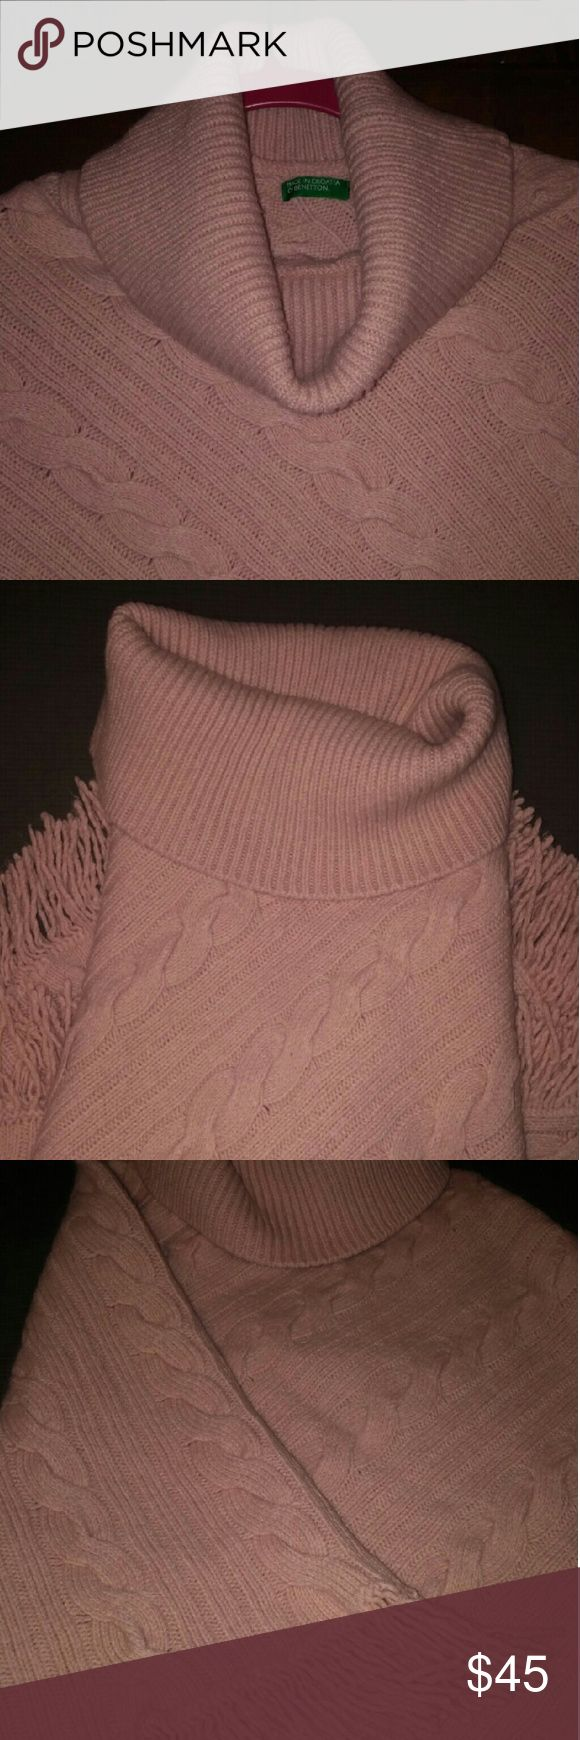 "BENETTON Turtleneck Cable Poncho with Fringe Light pink / blush rose color. 50% Wool 50% Acrylic. About 29"" long not including neck and fringe, 34"" wide not including fringe and 7.5"" unfolded neck. Fringe is about 3"". Dry clean only. Bundle for discount and to save on shipping. Happy Shopping!! United Colors Of Benetton Sweaters Shrugs & Ponchos"